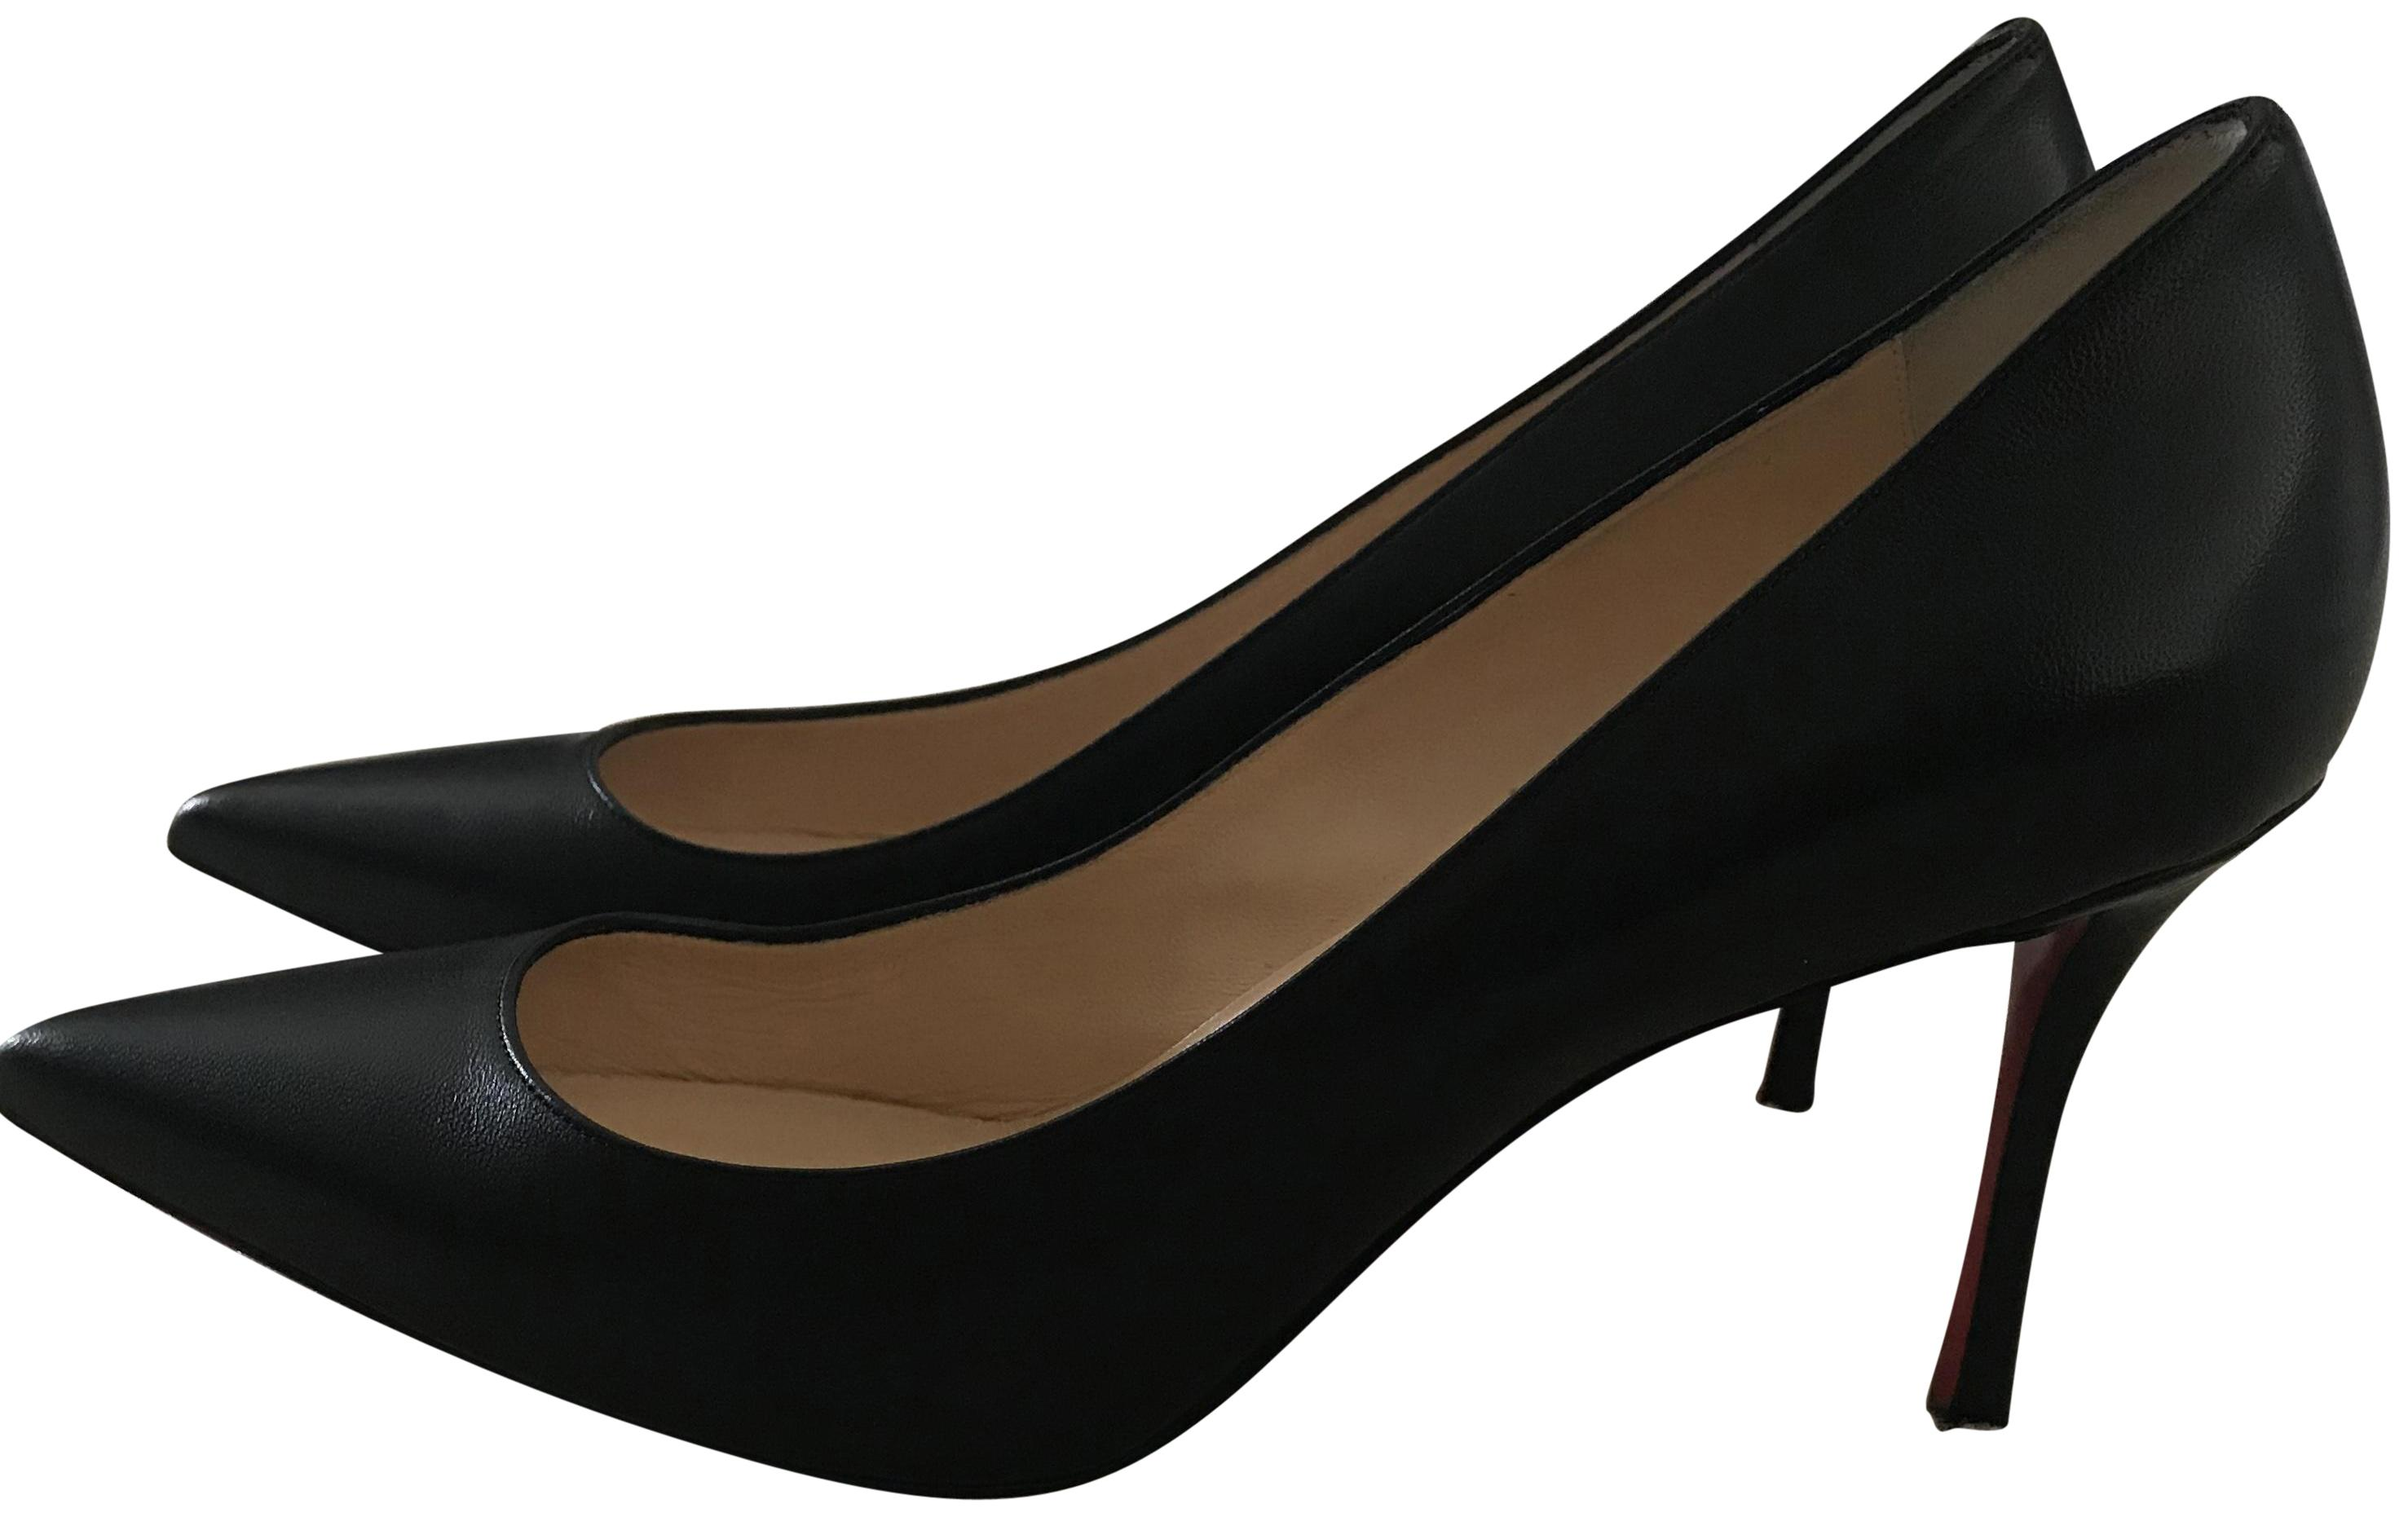 Christian Louboutin Black Pointy Toe Only Today Pumps Size EU 39 (Approx. US 9) Regular (M, B)